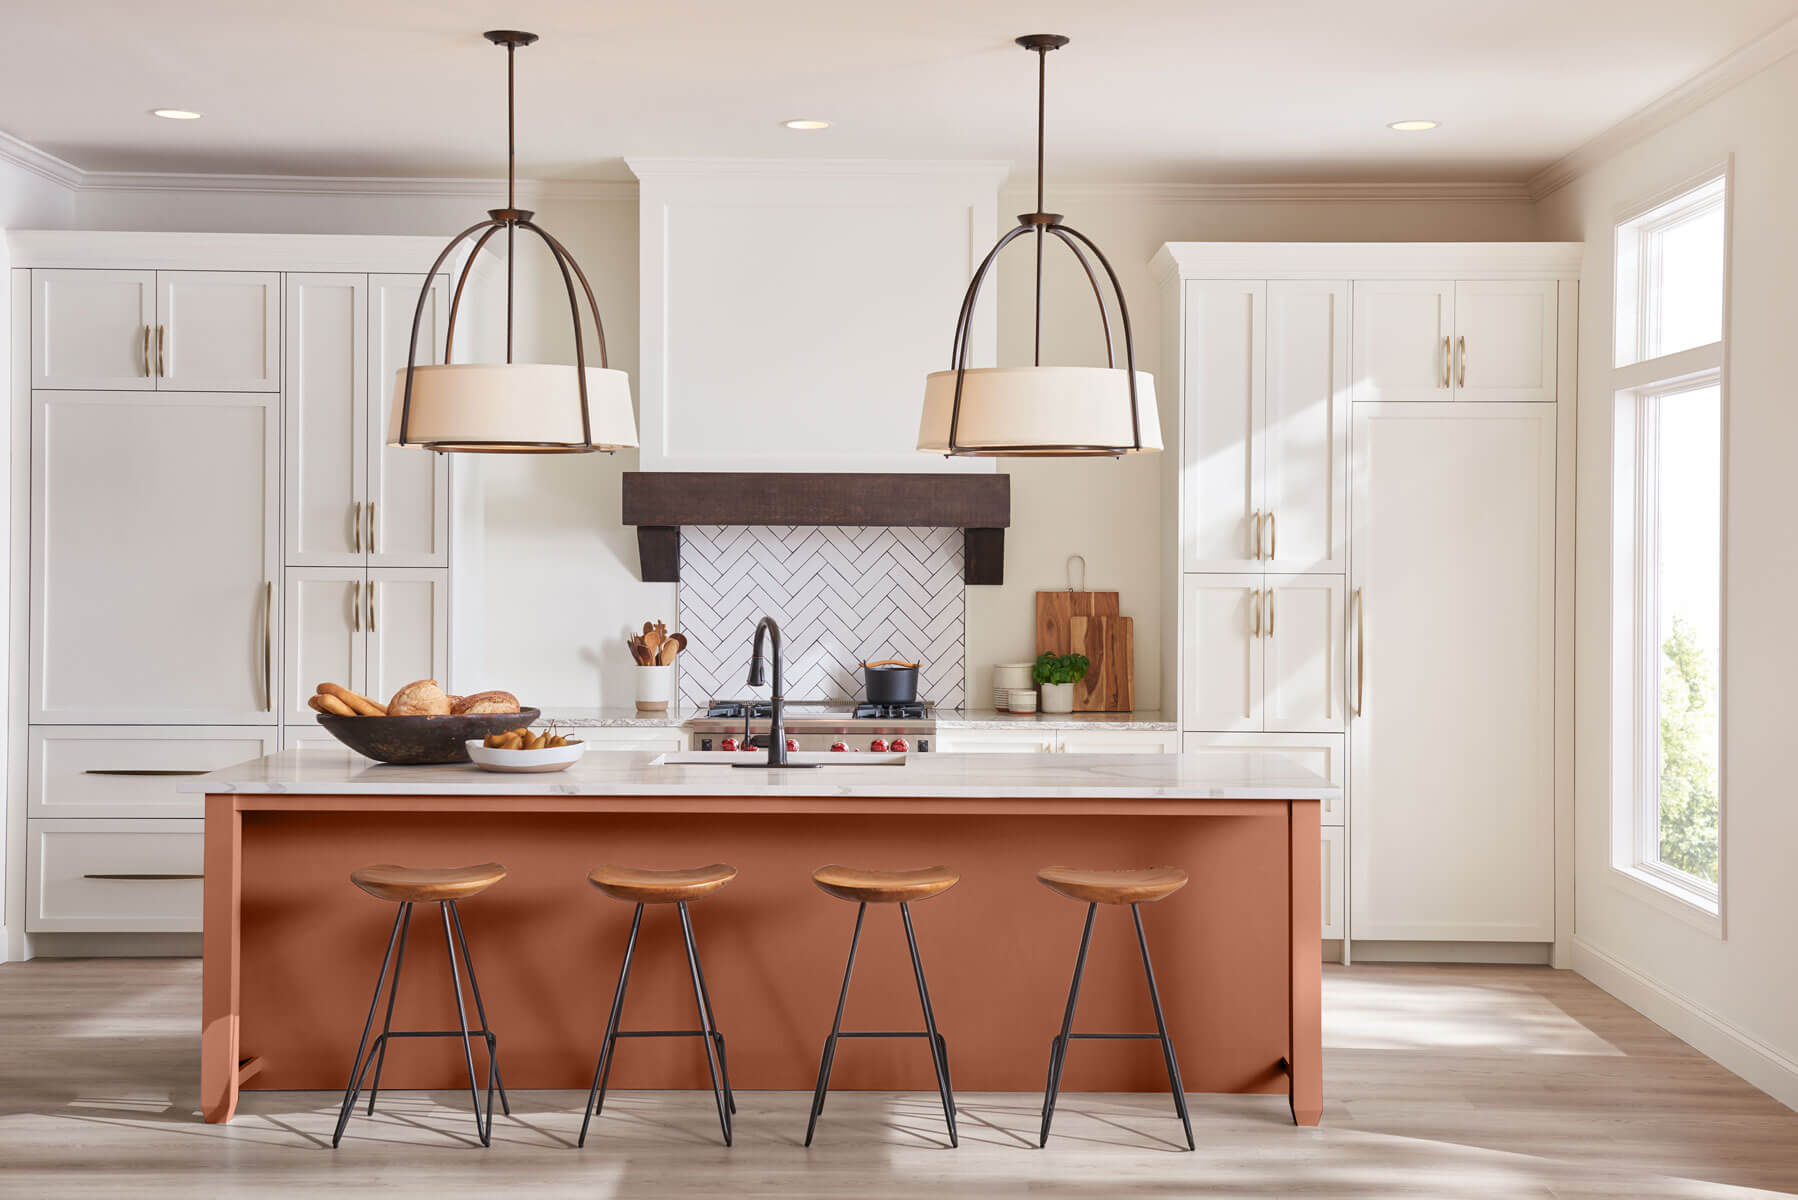 trending kitchen wall colors for the year 2019 on best colors for kitchen walls id=78016